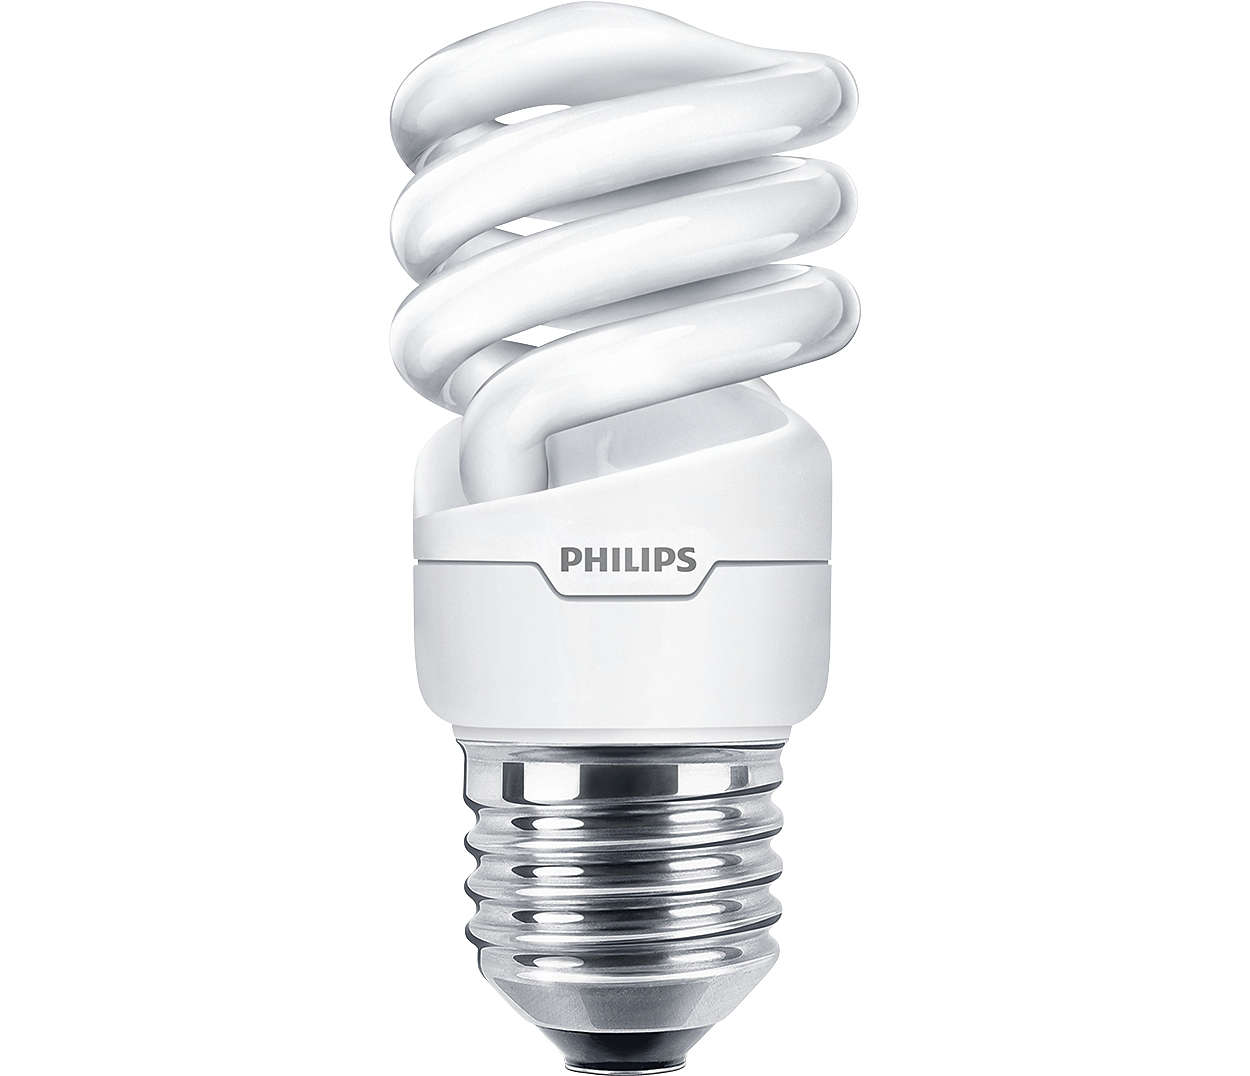 Decorative spiral energy-saving lamp with trusted quality